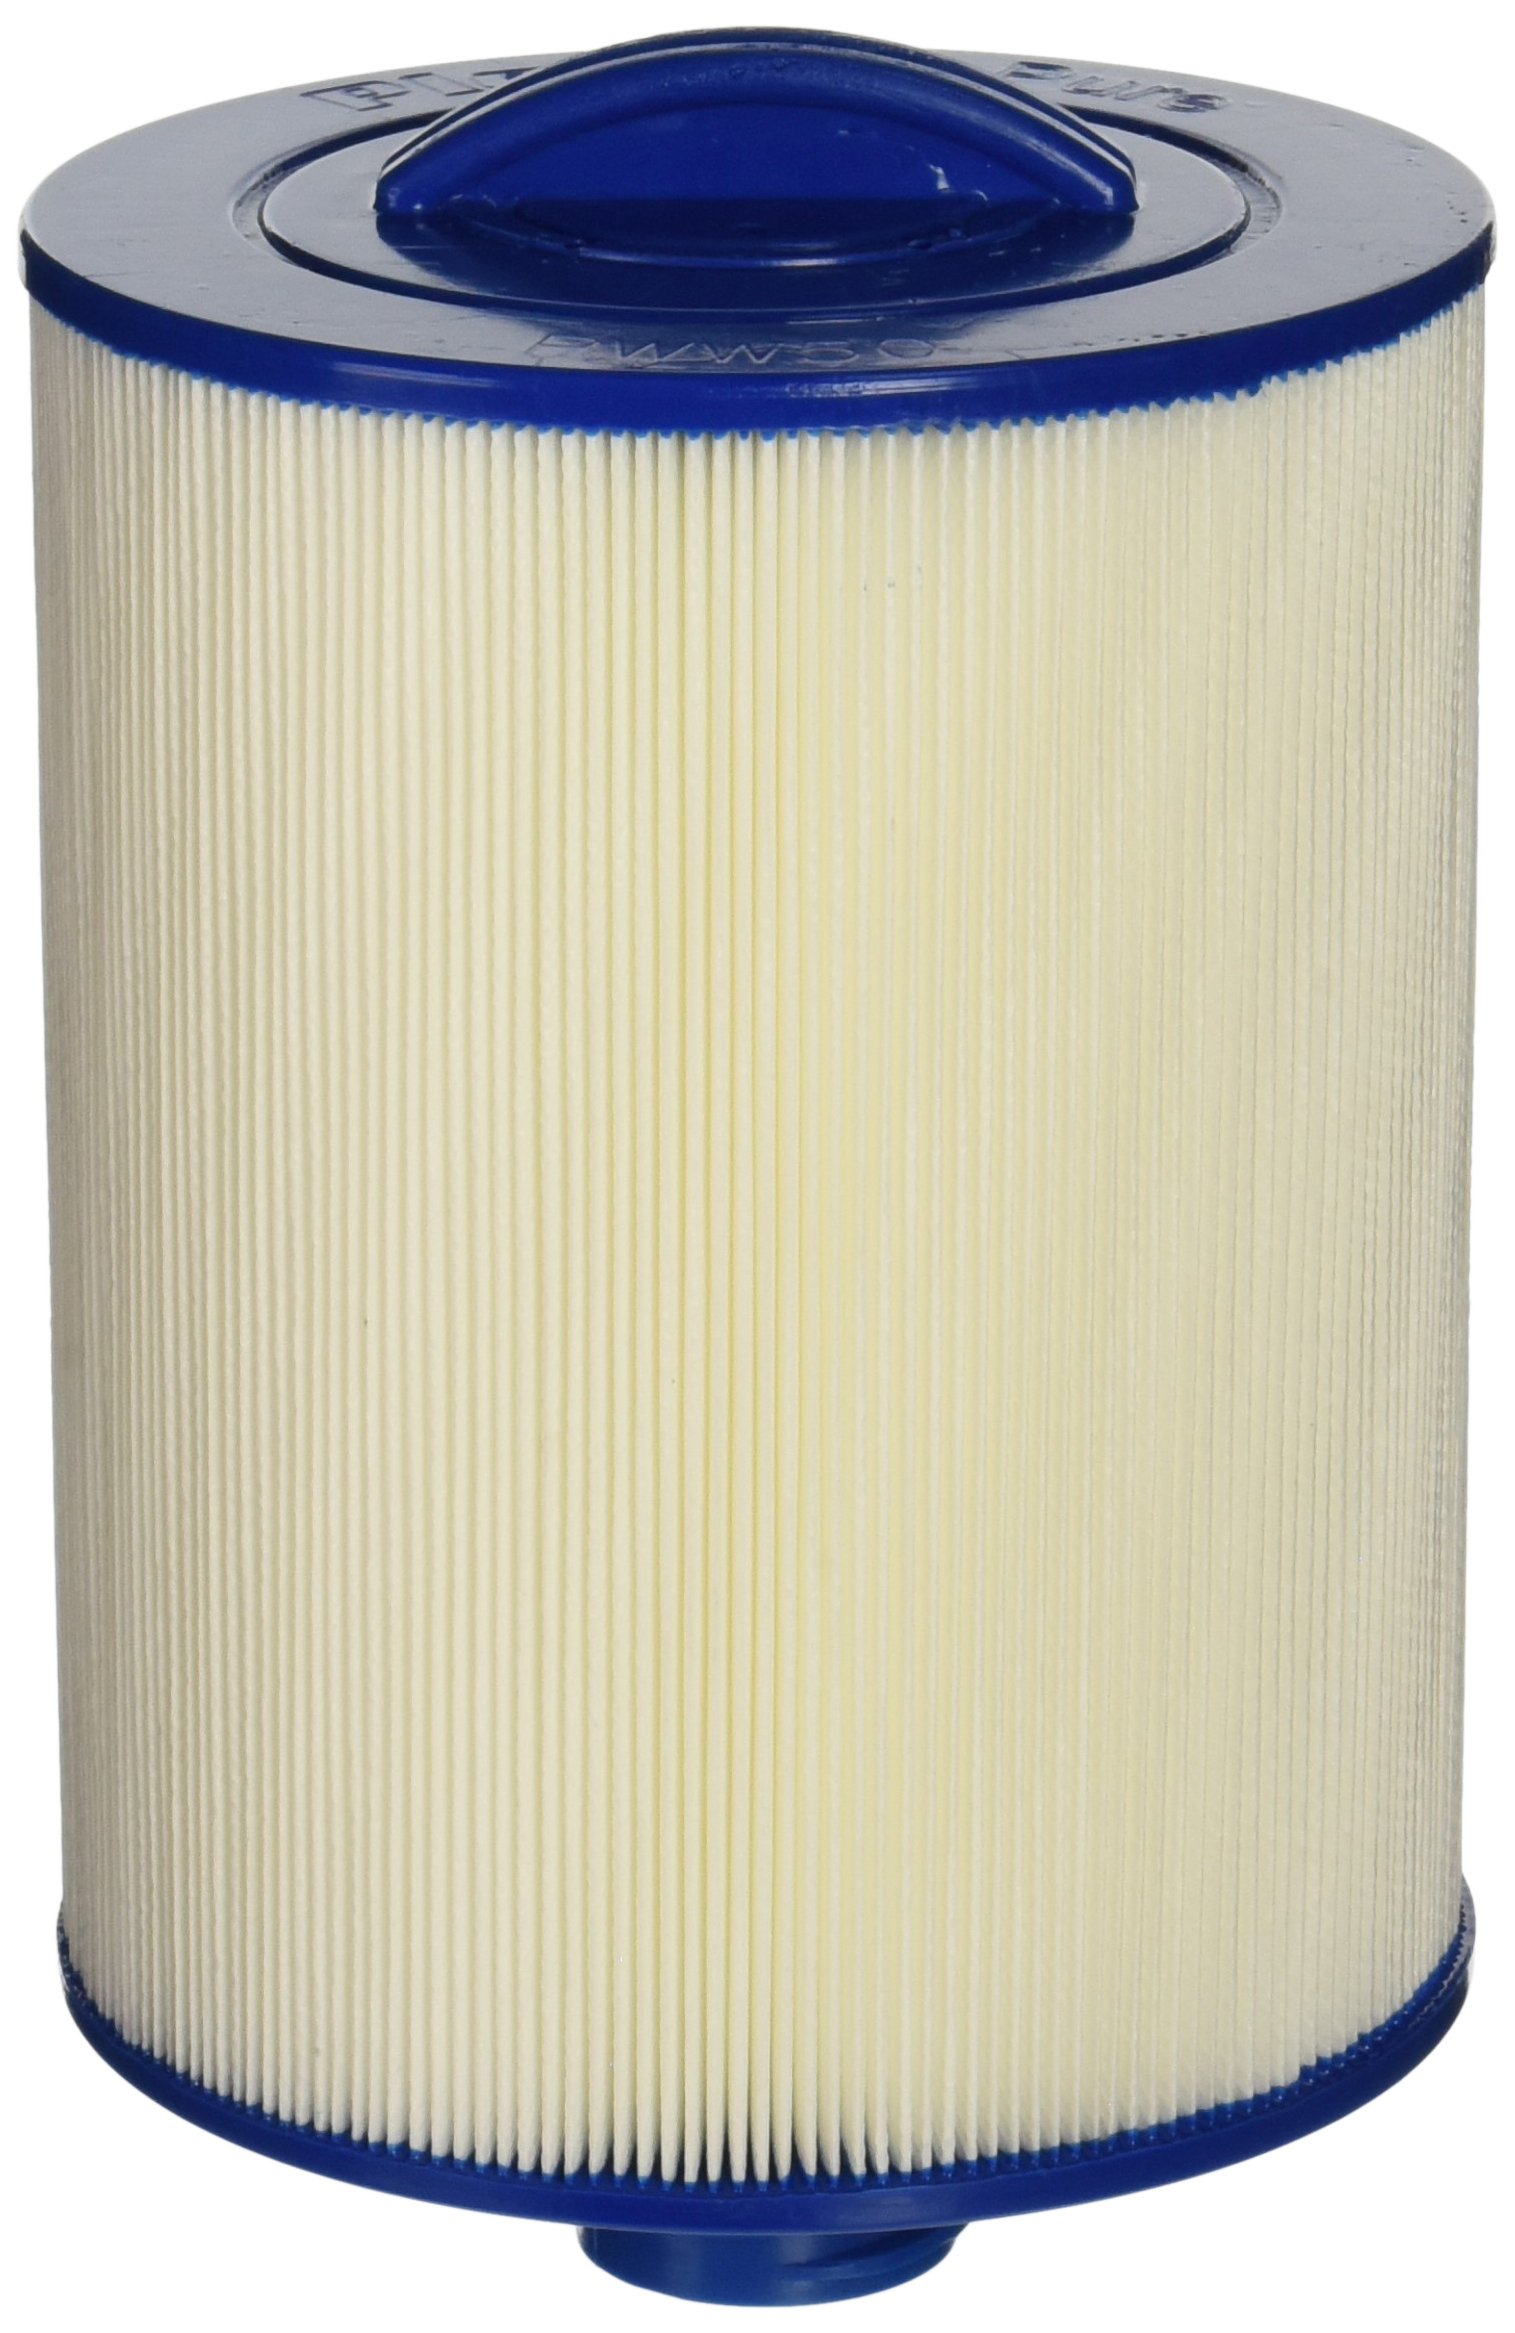 Pleatco PWW50P3 Replacement Cartridge for Waterway Front Access Skimmer (2 Required), 1 Cartridge product image